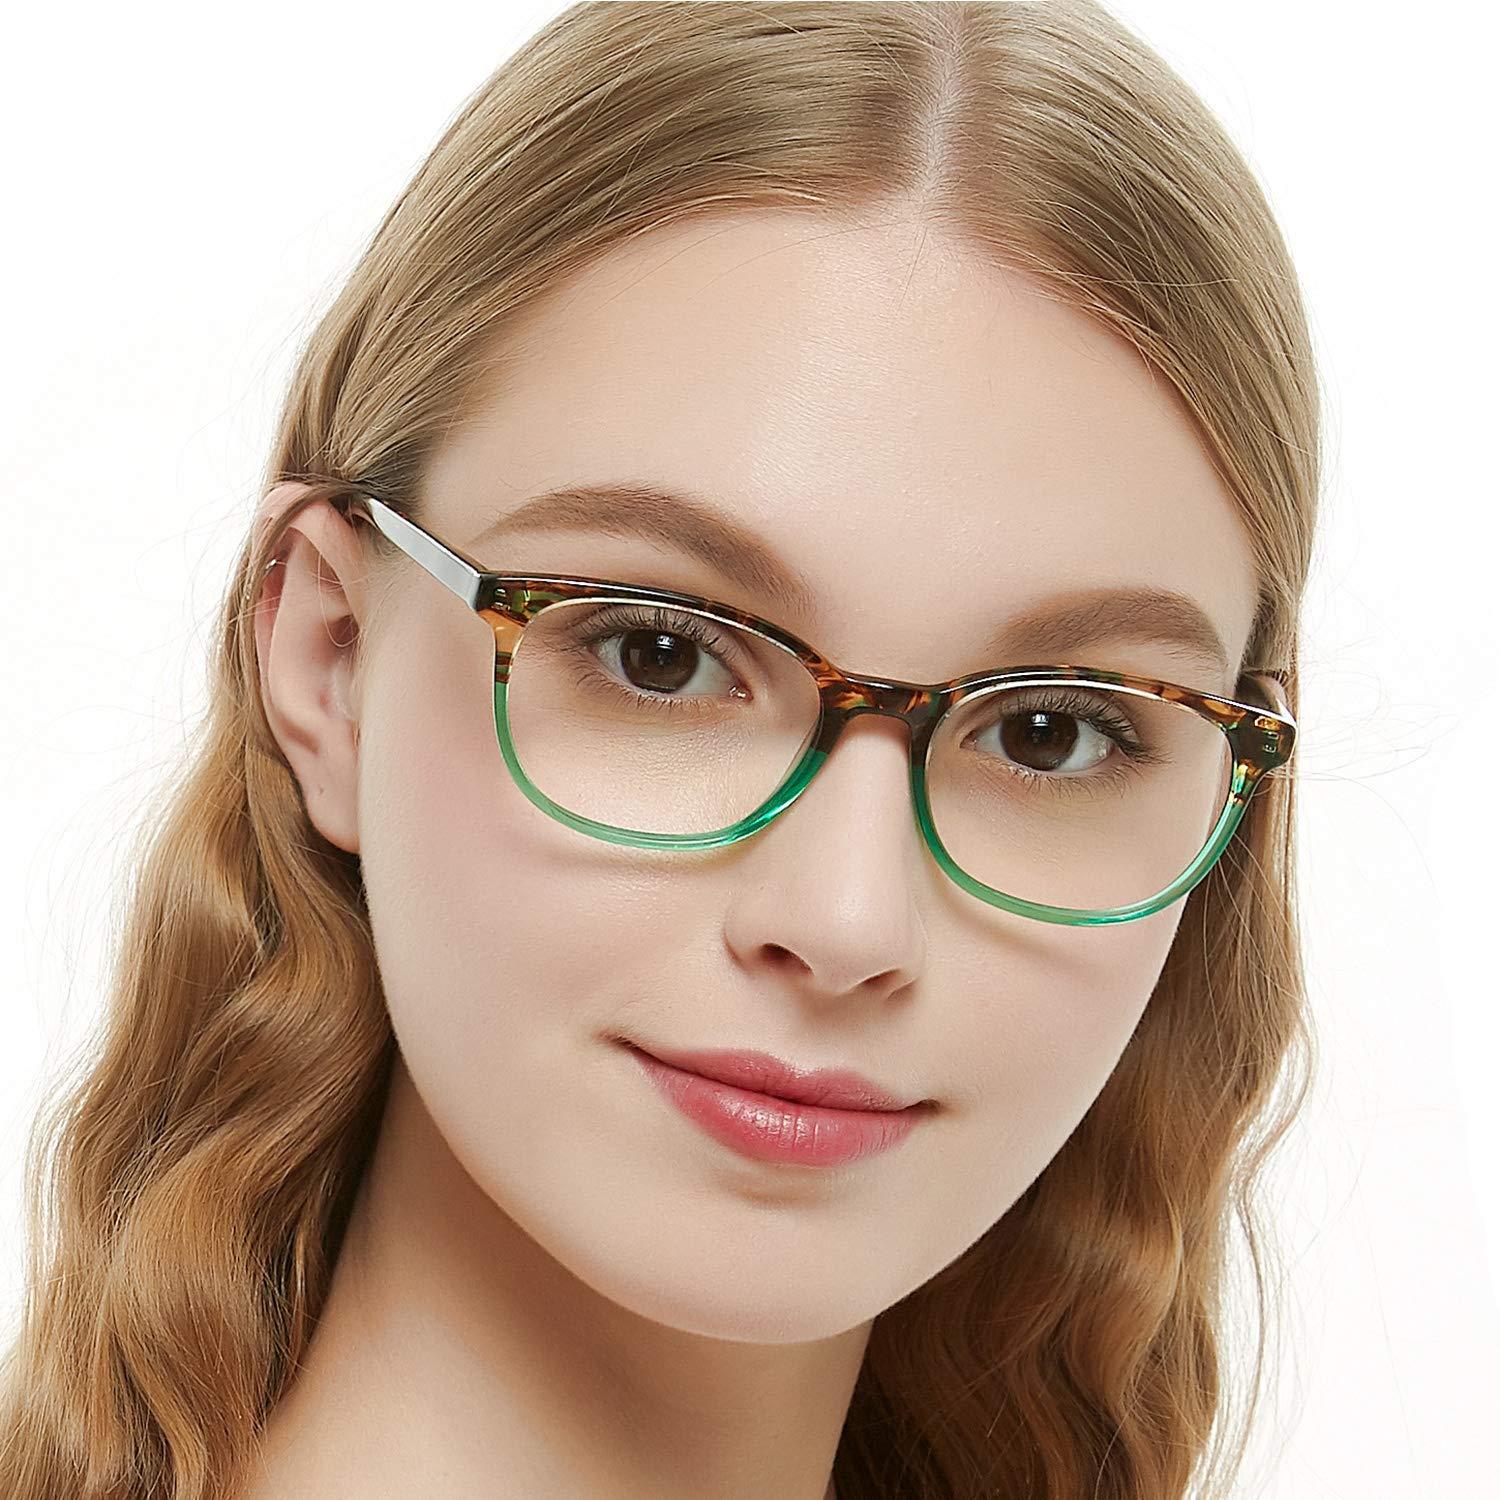 f8a072f42a3 OCCI CHIARI Rectangle Stylish Eyewear Frame Non-prescription Eyeglasses  With Clear Lenses Gifts for Women (Green